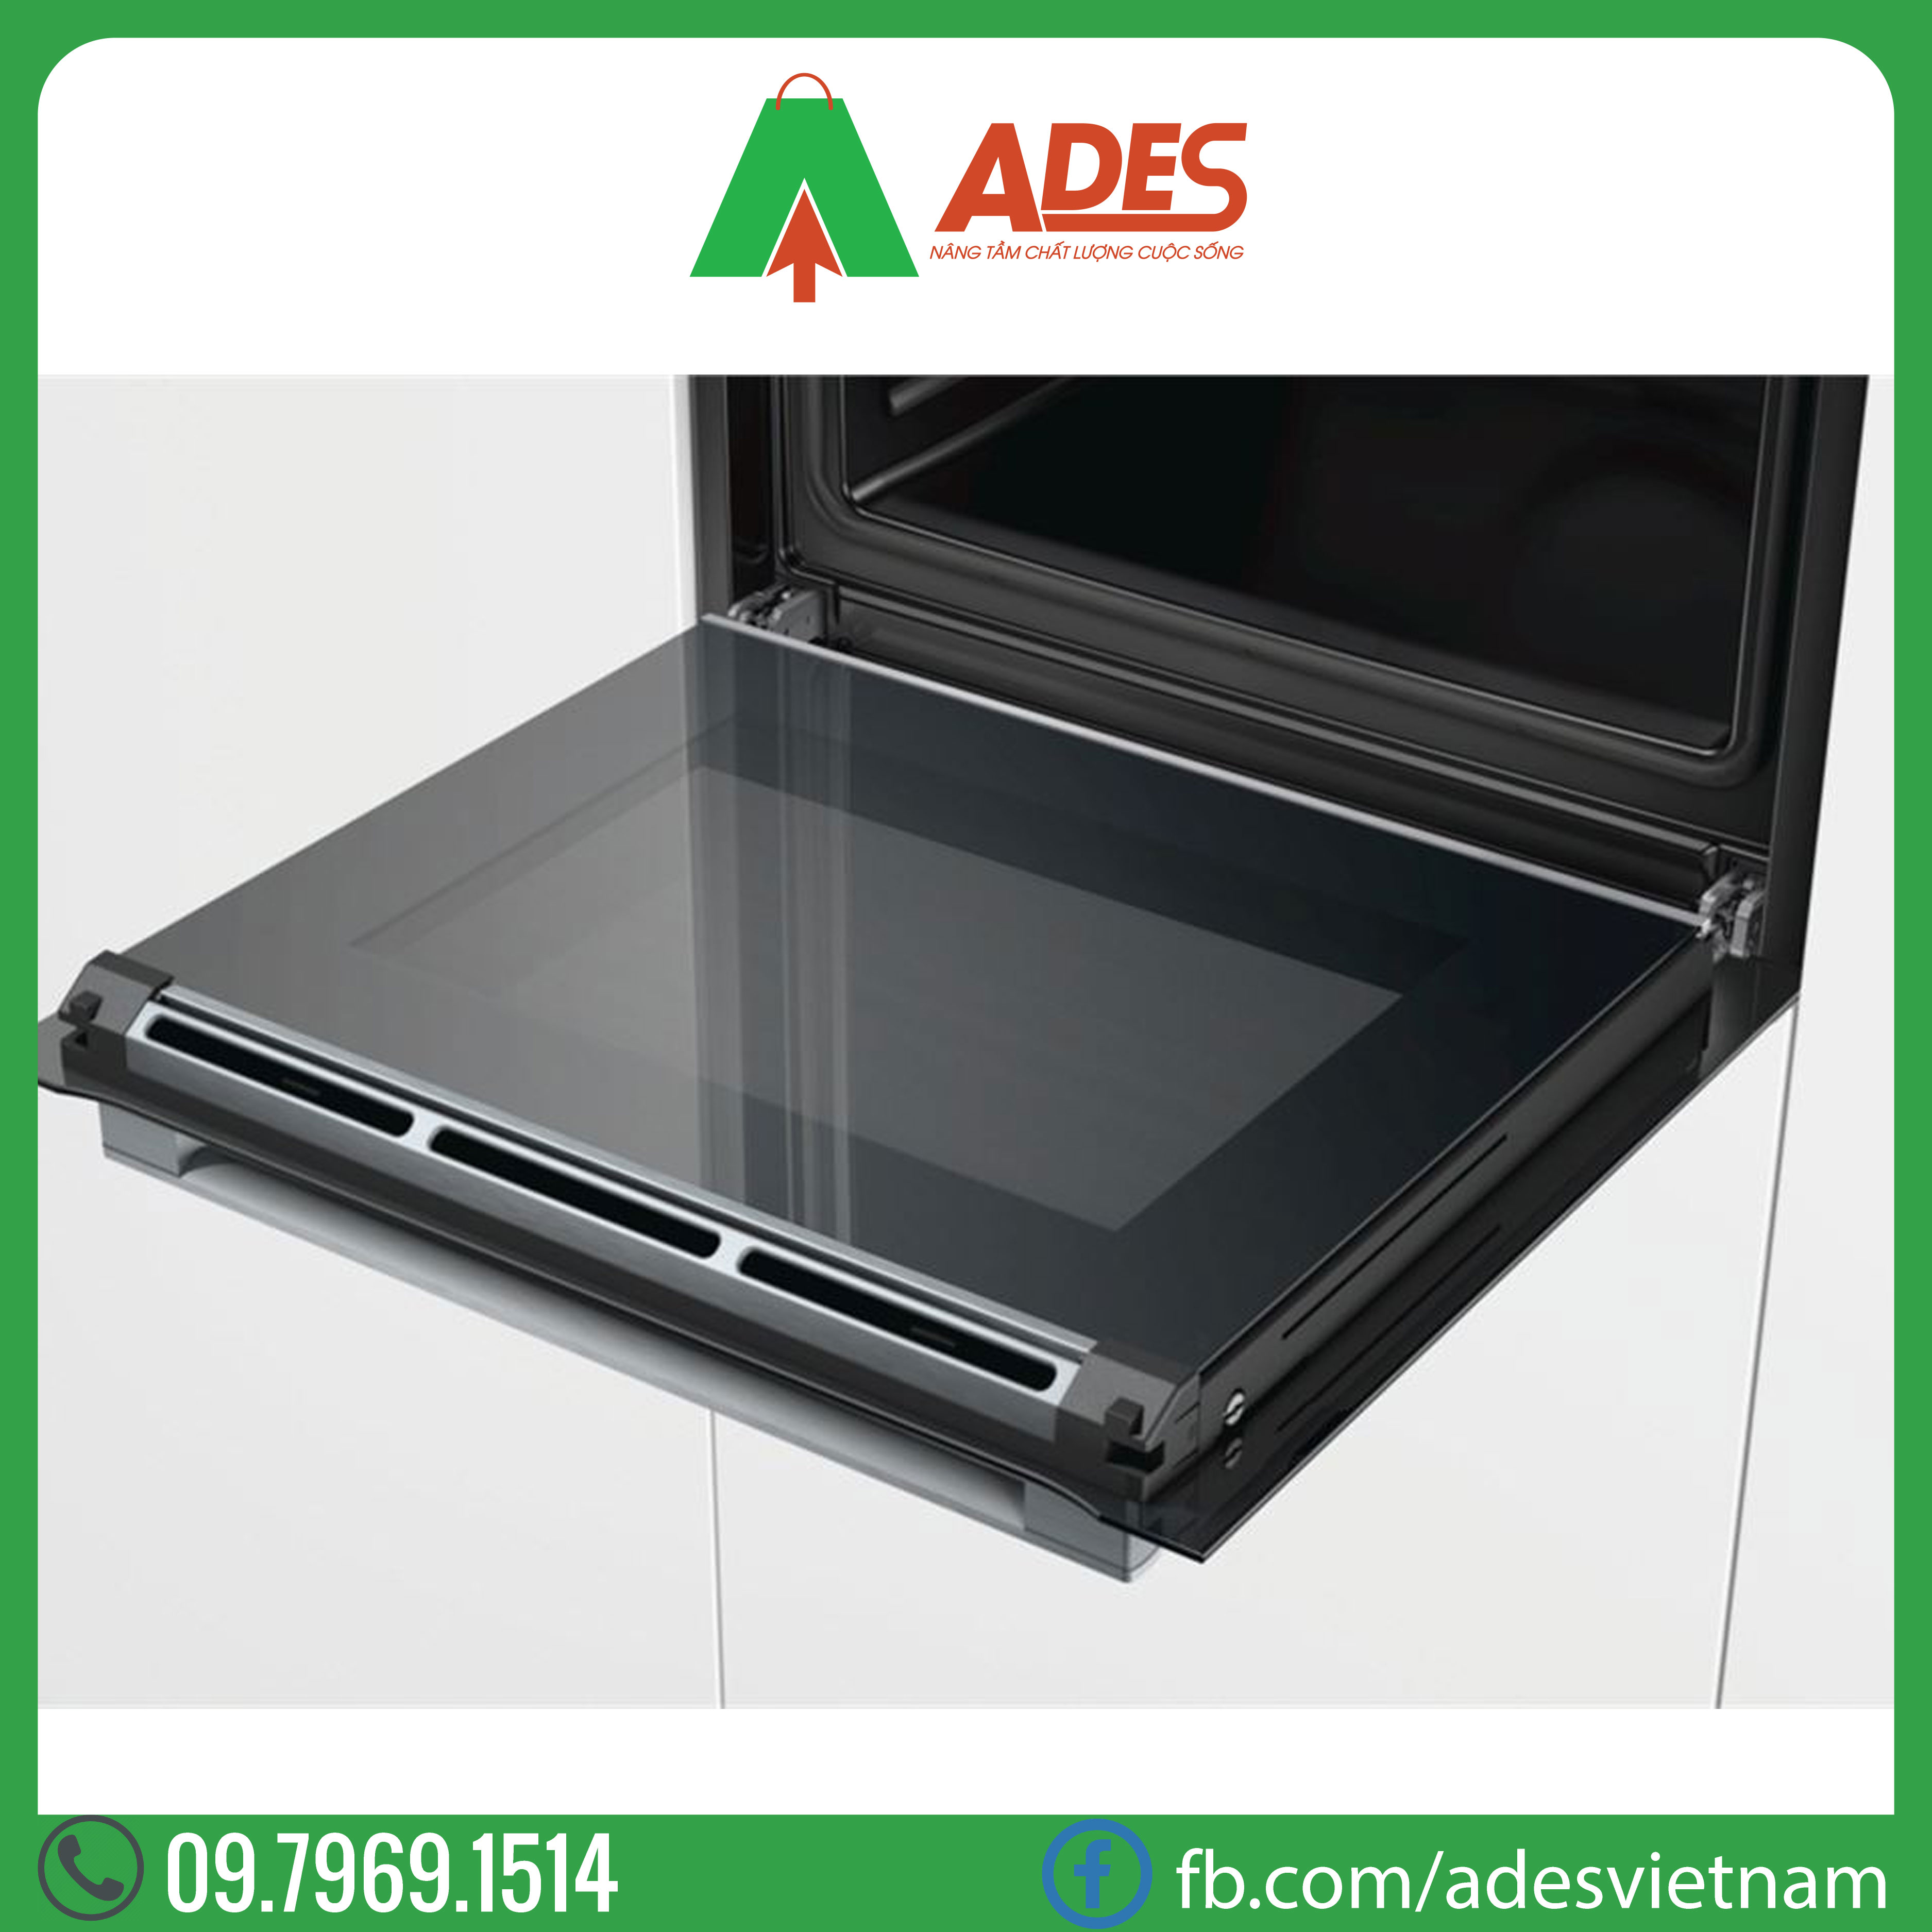 Lo nuong Bosch 3650W HBG675BB1